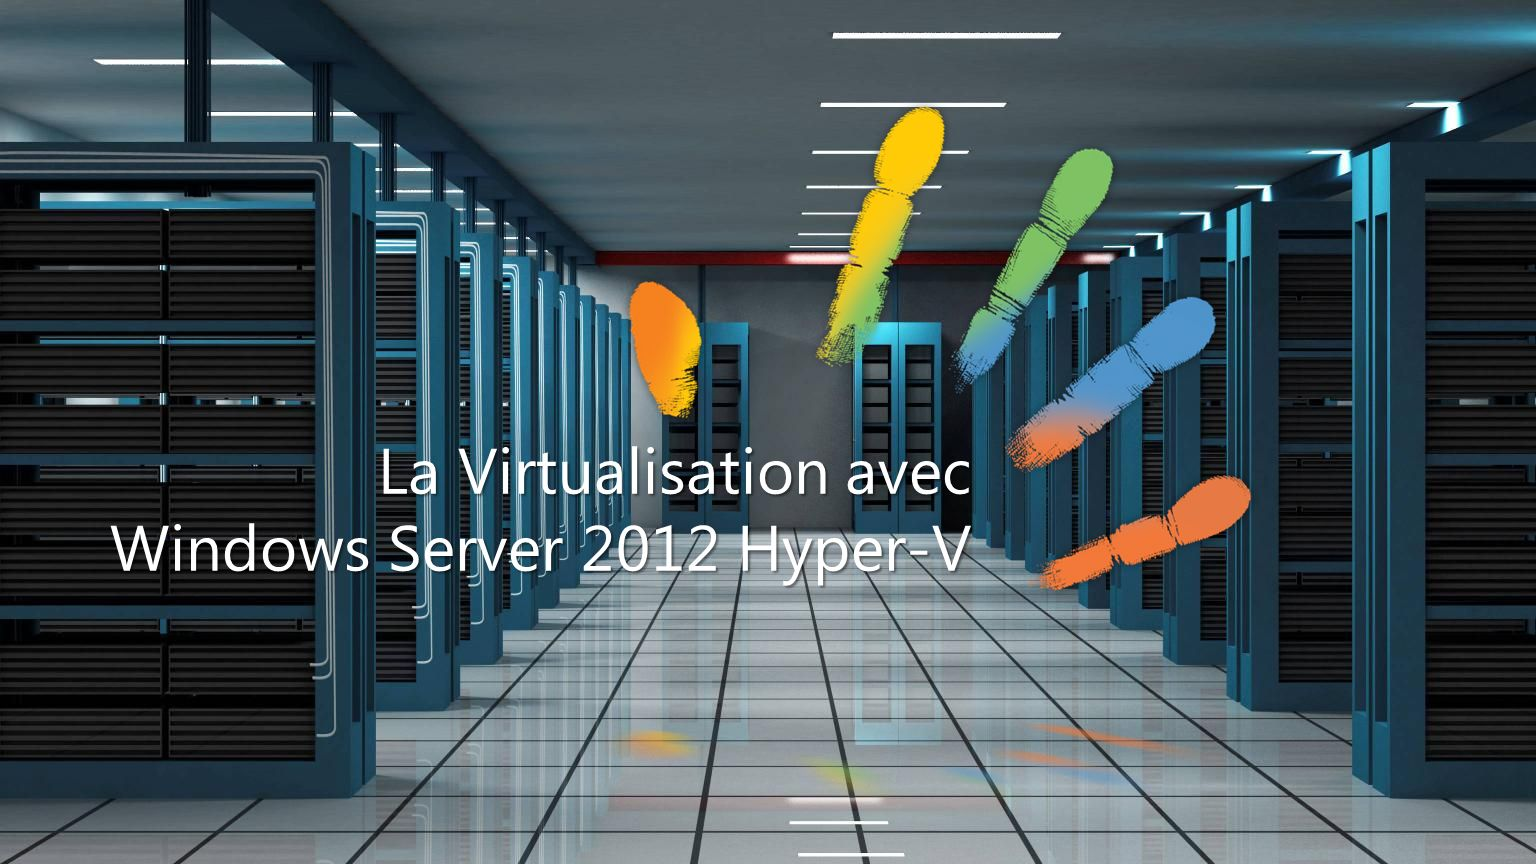 La Virtualisation avec Windows Server 2012 Hyper-V